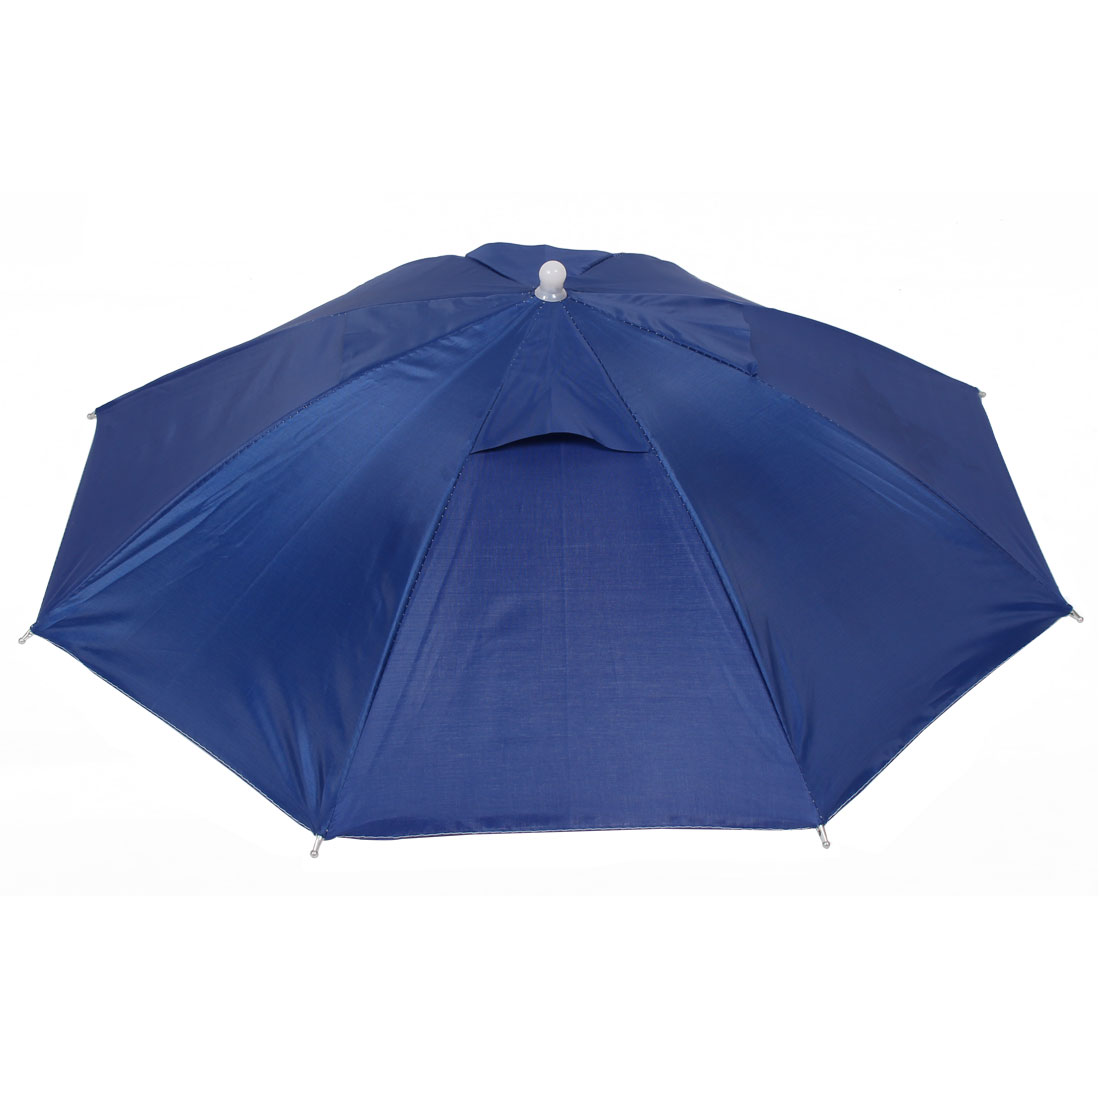 Outdoor Fishing Camping Royal Blue Umbrella Hat Headwear Cap